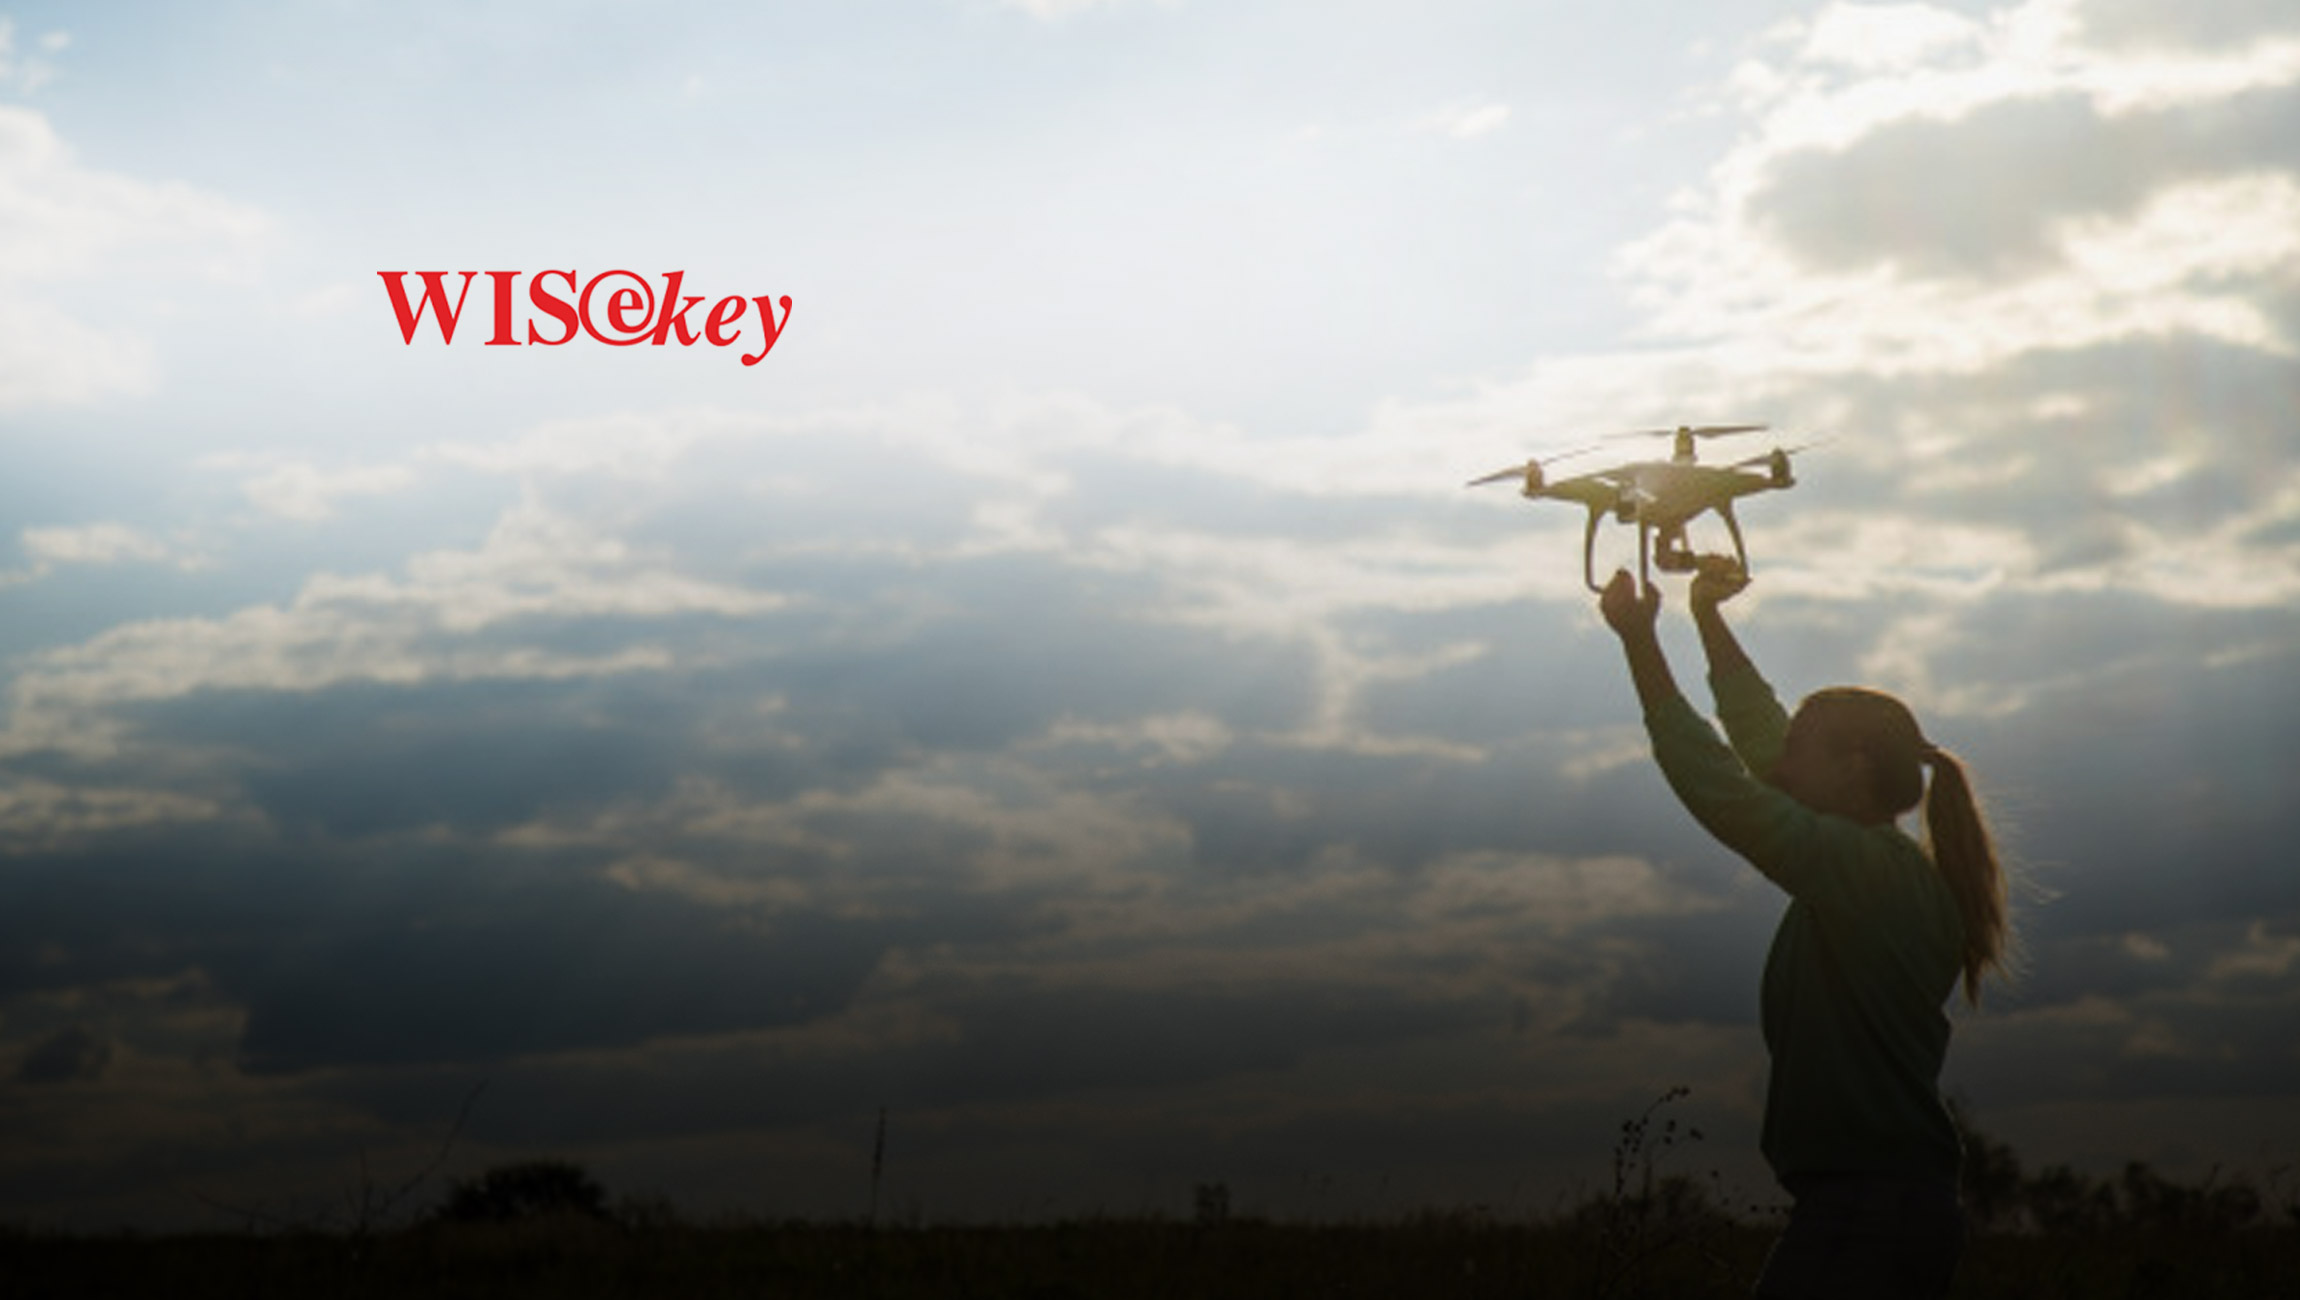 WISeKey Develops WISeToken Utility Token, a Blockchain-Based Asset for Drones and Robots to Secure IoT Interactions (Drone-to-Drone or People-to-Drone), Recognize and Trust Each Other